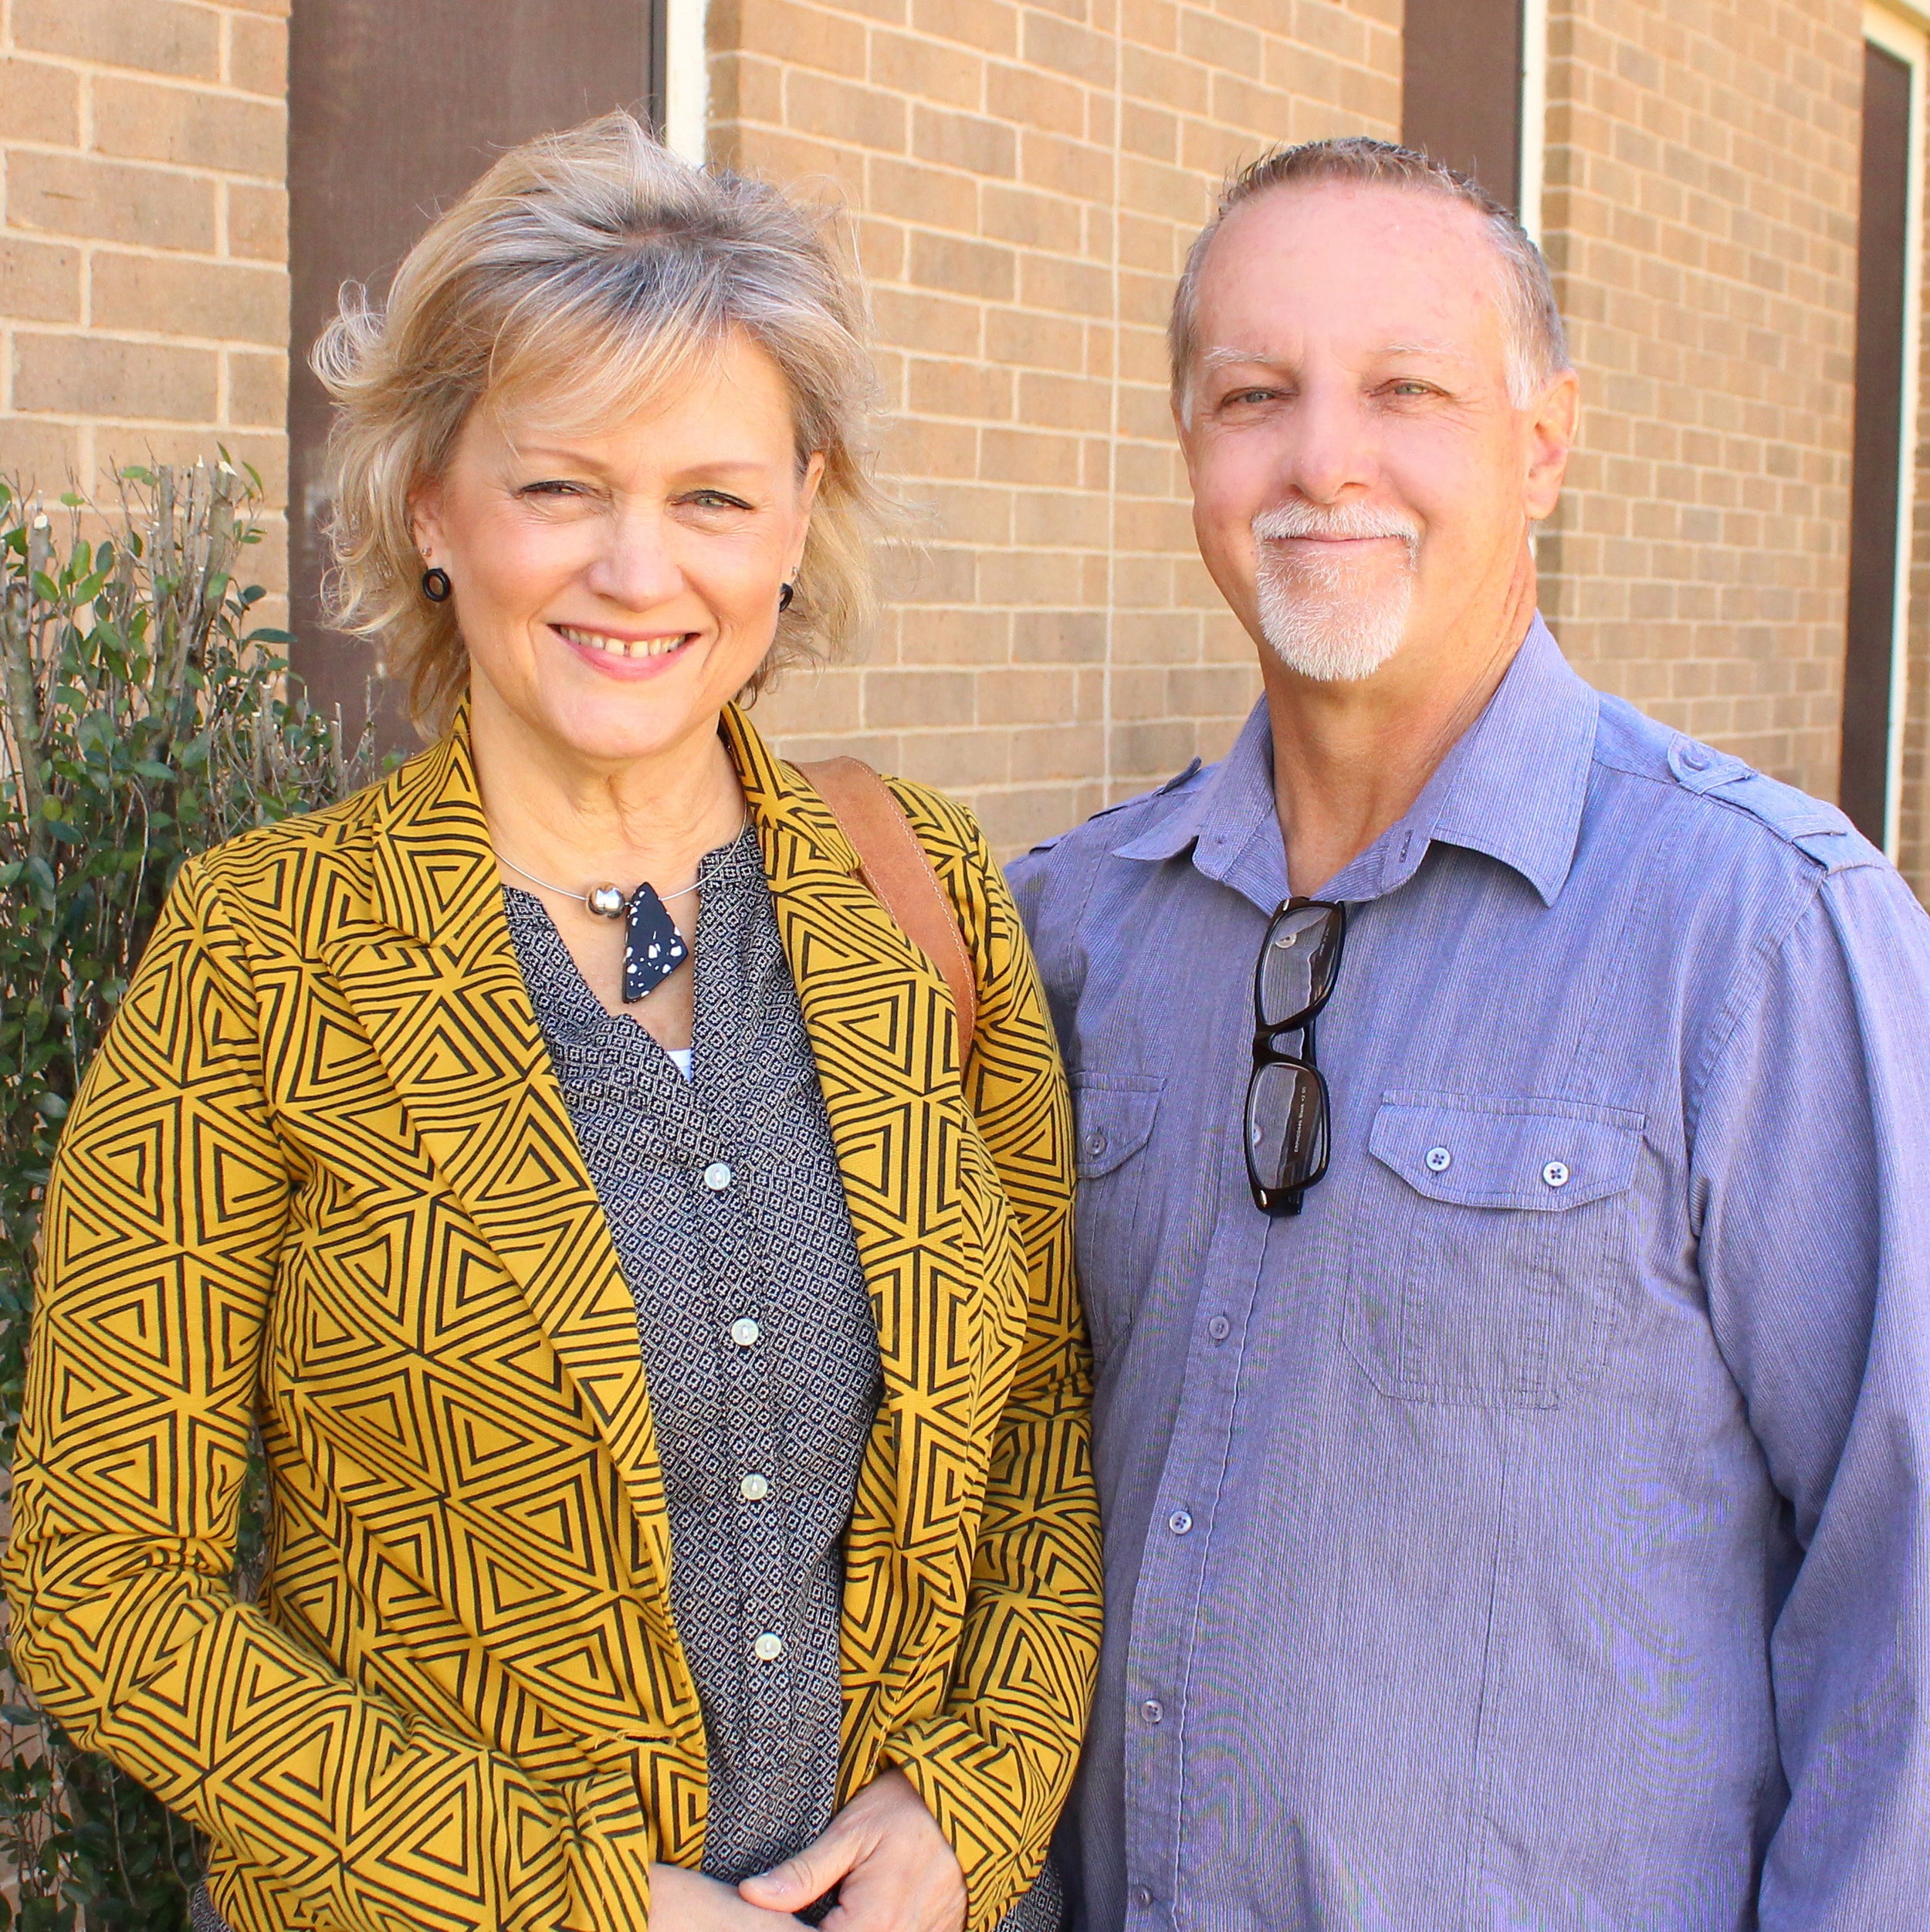 Led by  Jon & Marcy Lytle - Meets at 6:30 on Thursday evenings in Round Rock.Childcare not provided.THIS GROUP IS CURRENTLY FULL.